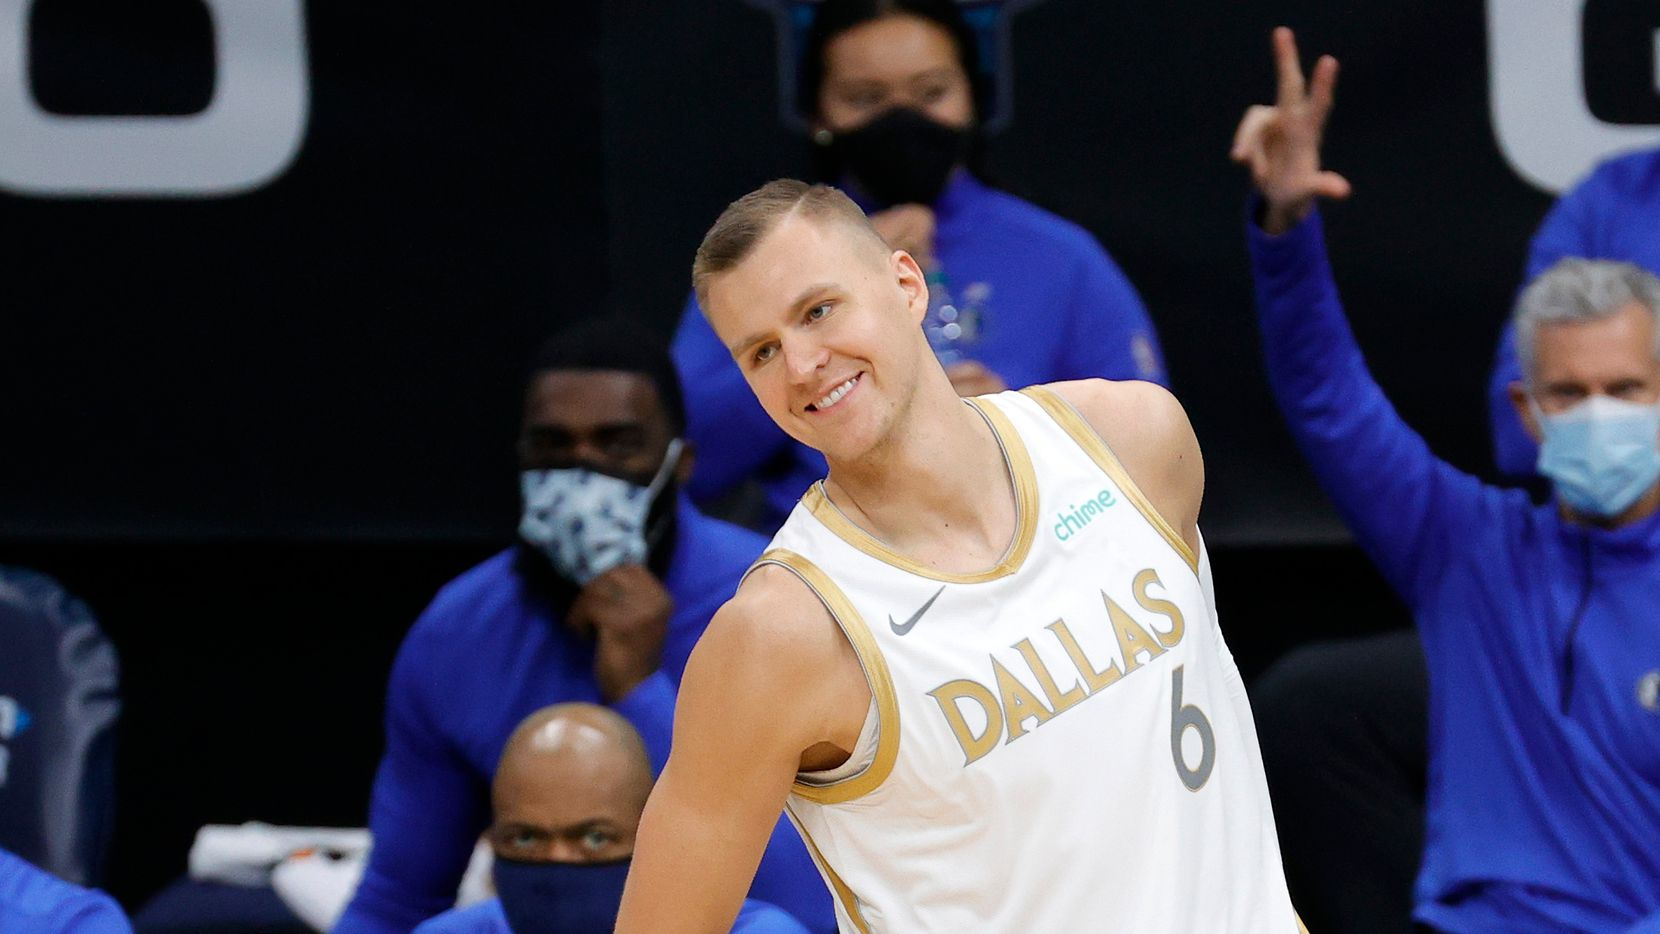 Kristaps Porzingis #6 of the Dallas Mavericks reacts following a three point basket during the third quarter of their game against the Charlotte Hornets at Spectrum Center on January 13, 2021 in Charlotte, North Carolina.